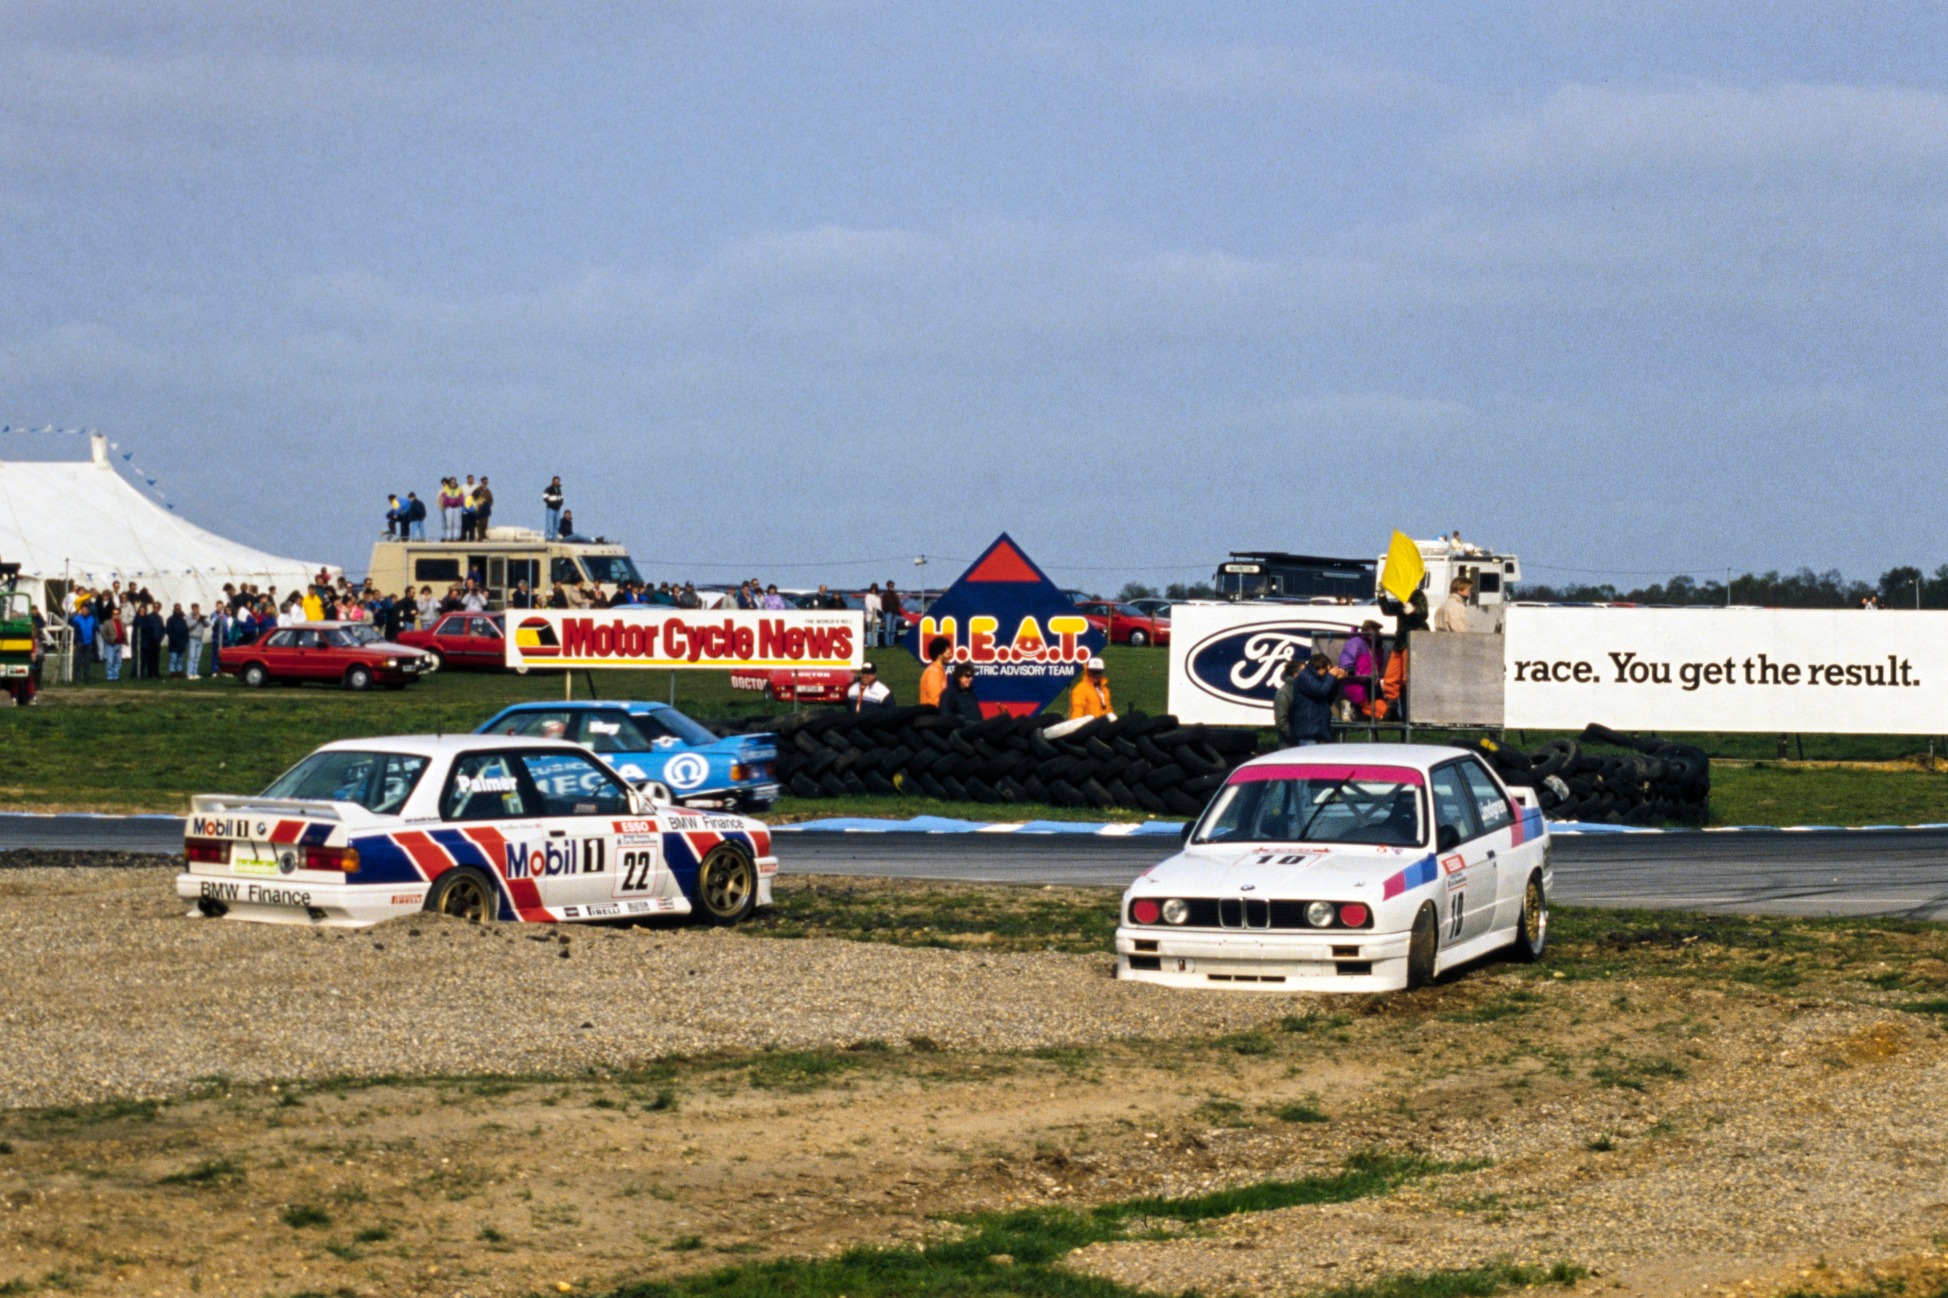 Lindgren and Palmer at the scene of their infamous BTCC clash at Snetterton in 1991